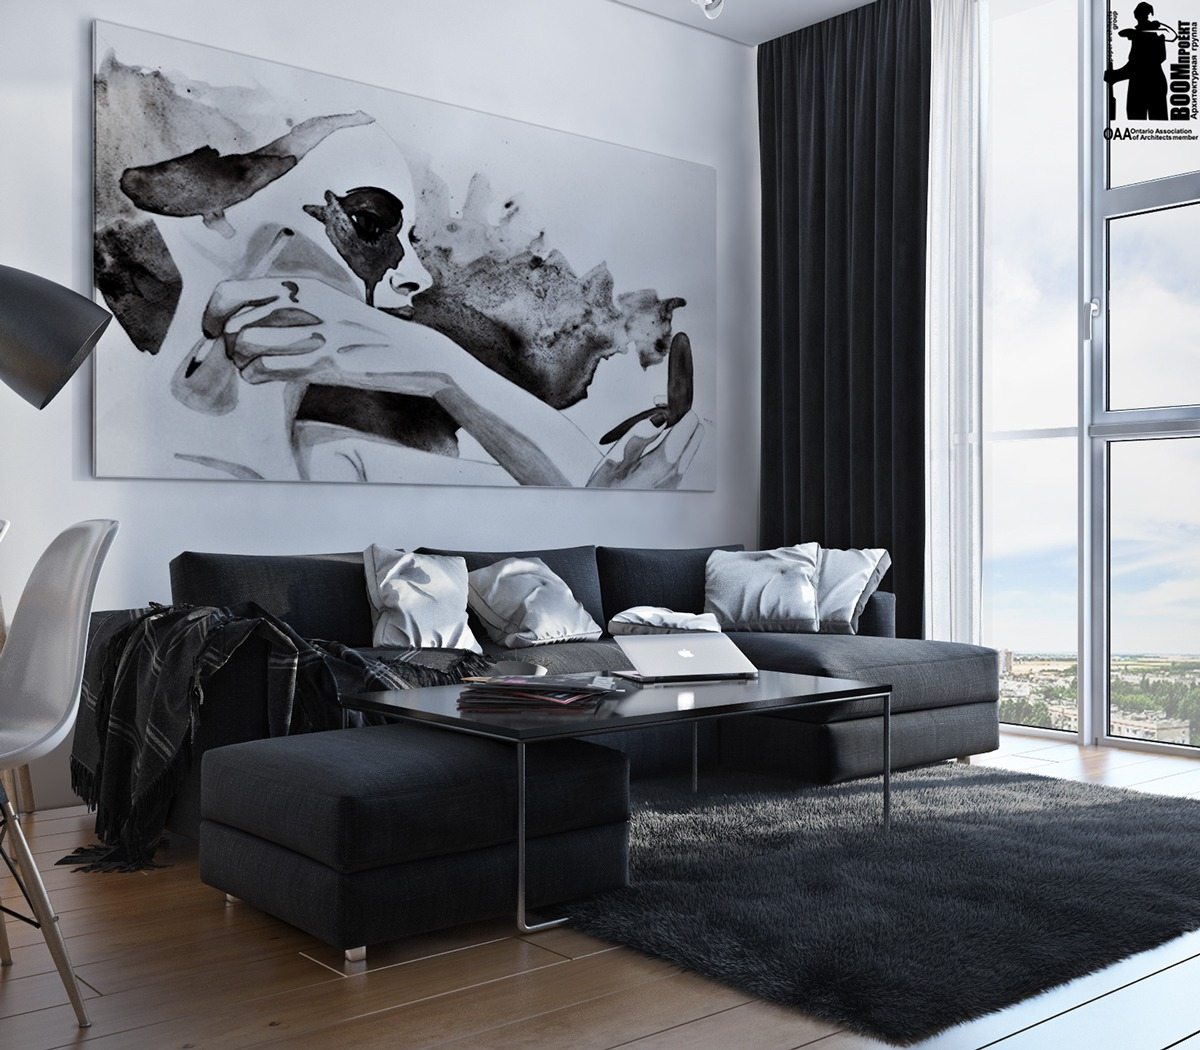 black and white interior design idea